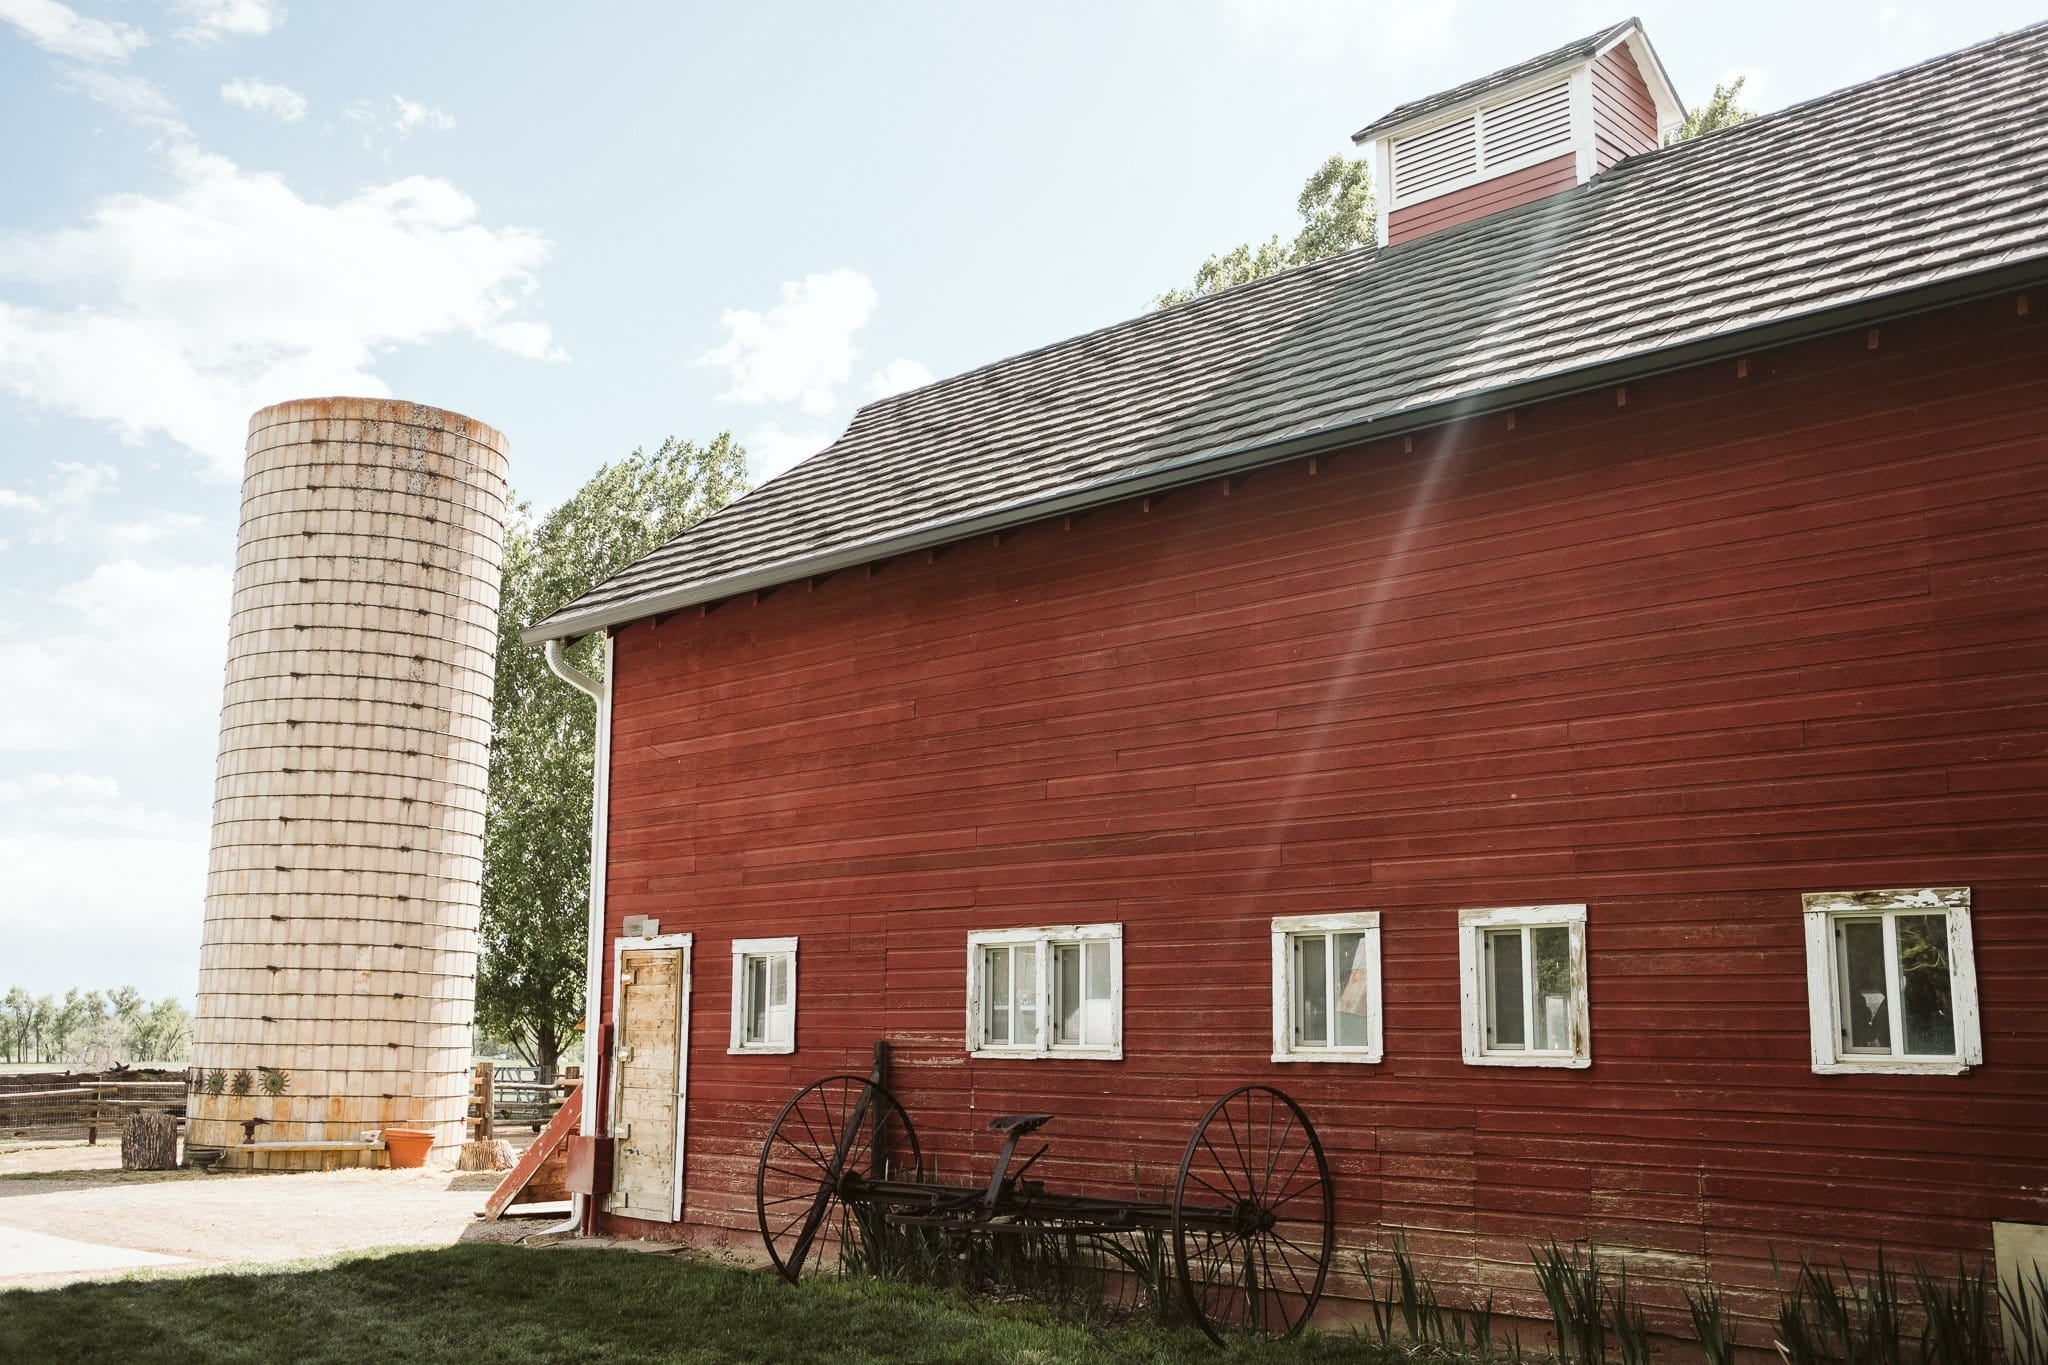 milston-well-farm-wedding-venue-boulder-21